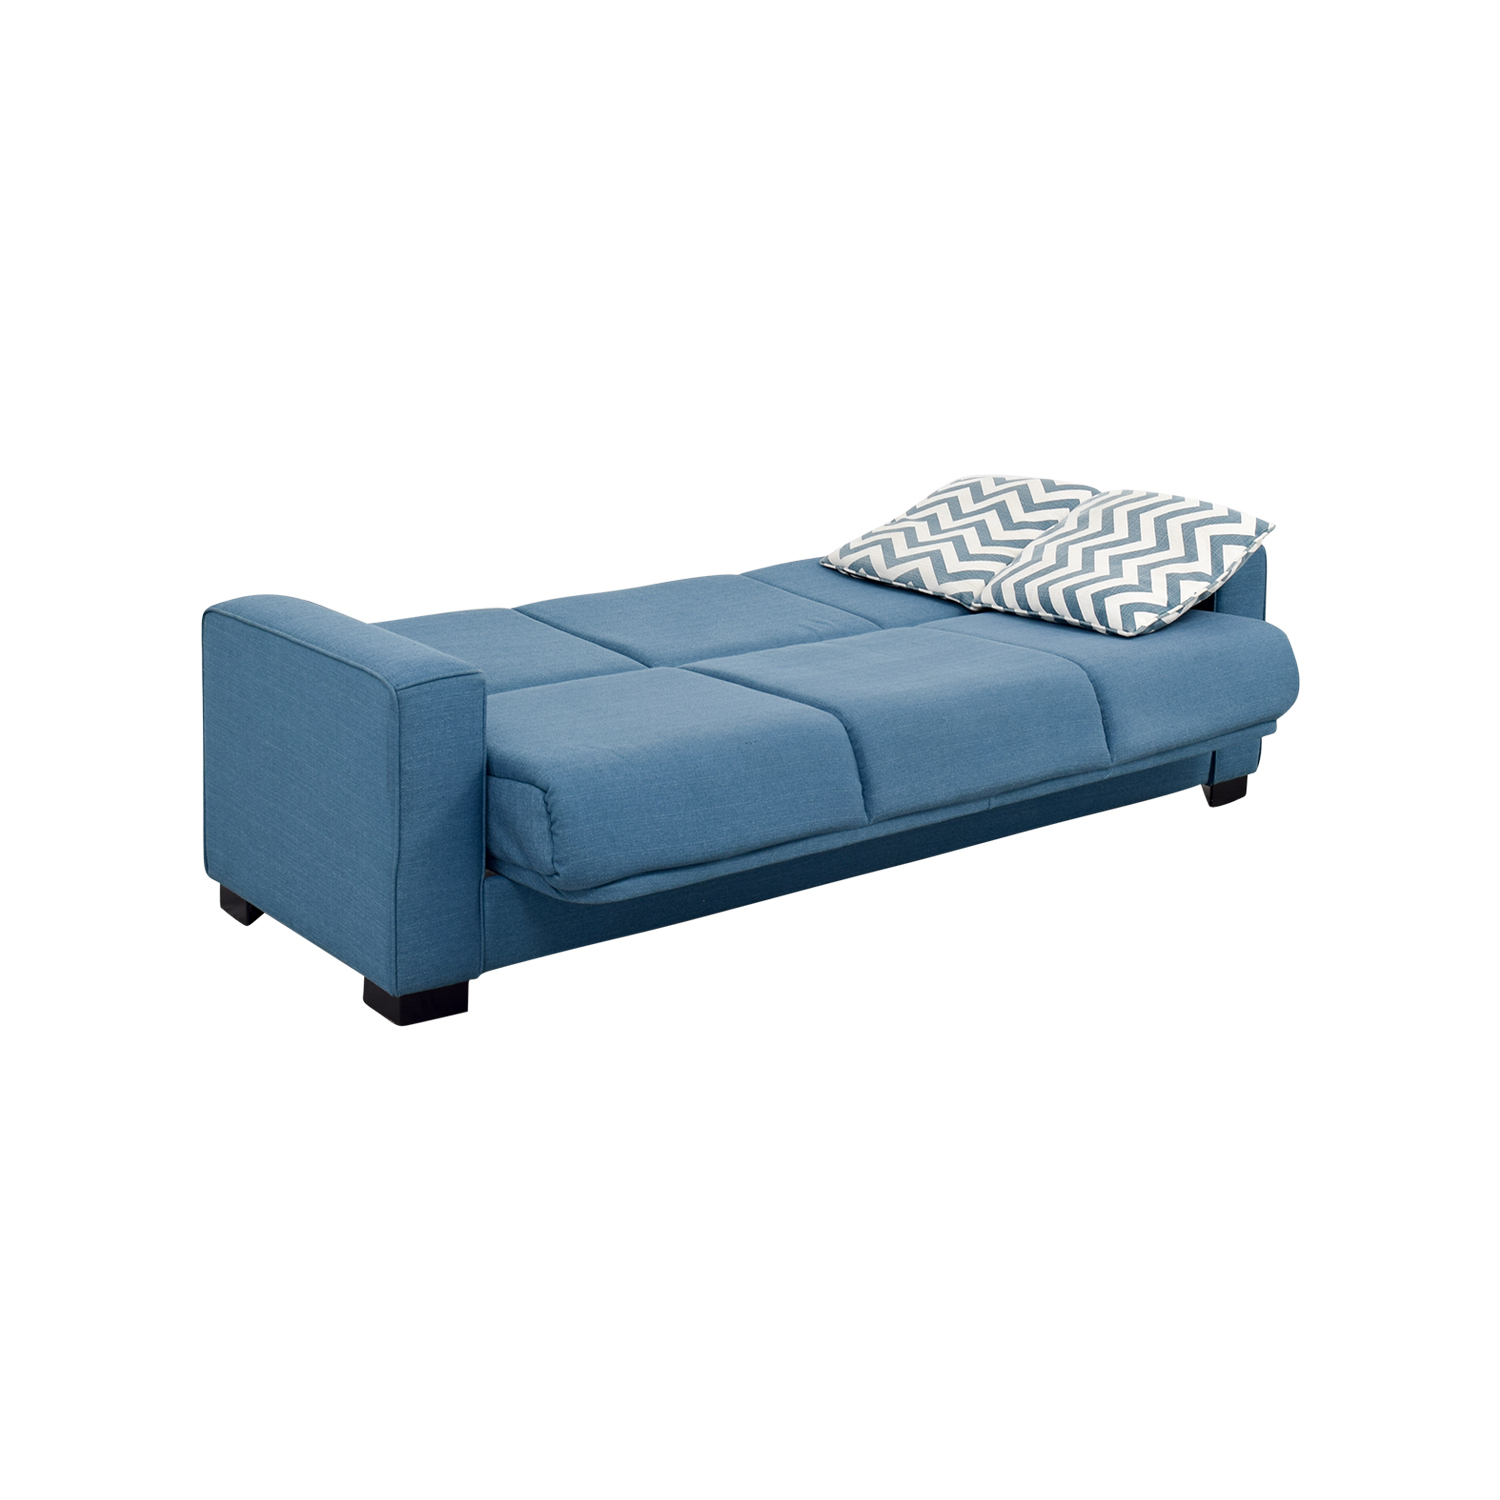 77 Off Bed Bath And Beyond Bed Bath Amp Beyond Blue